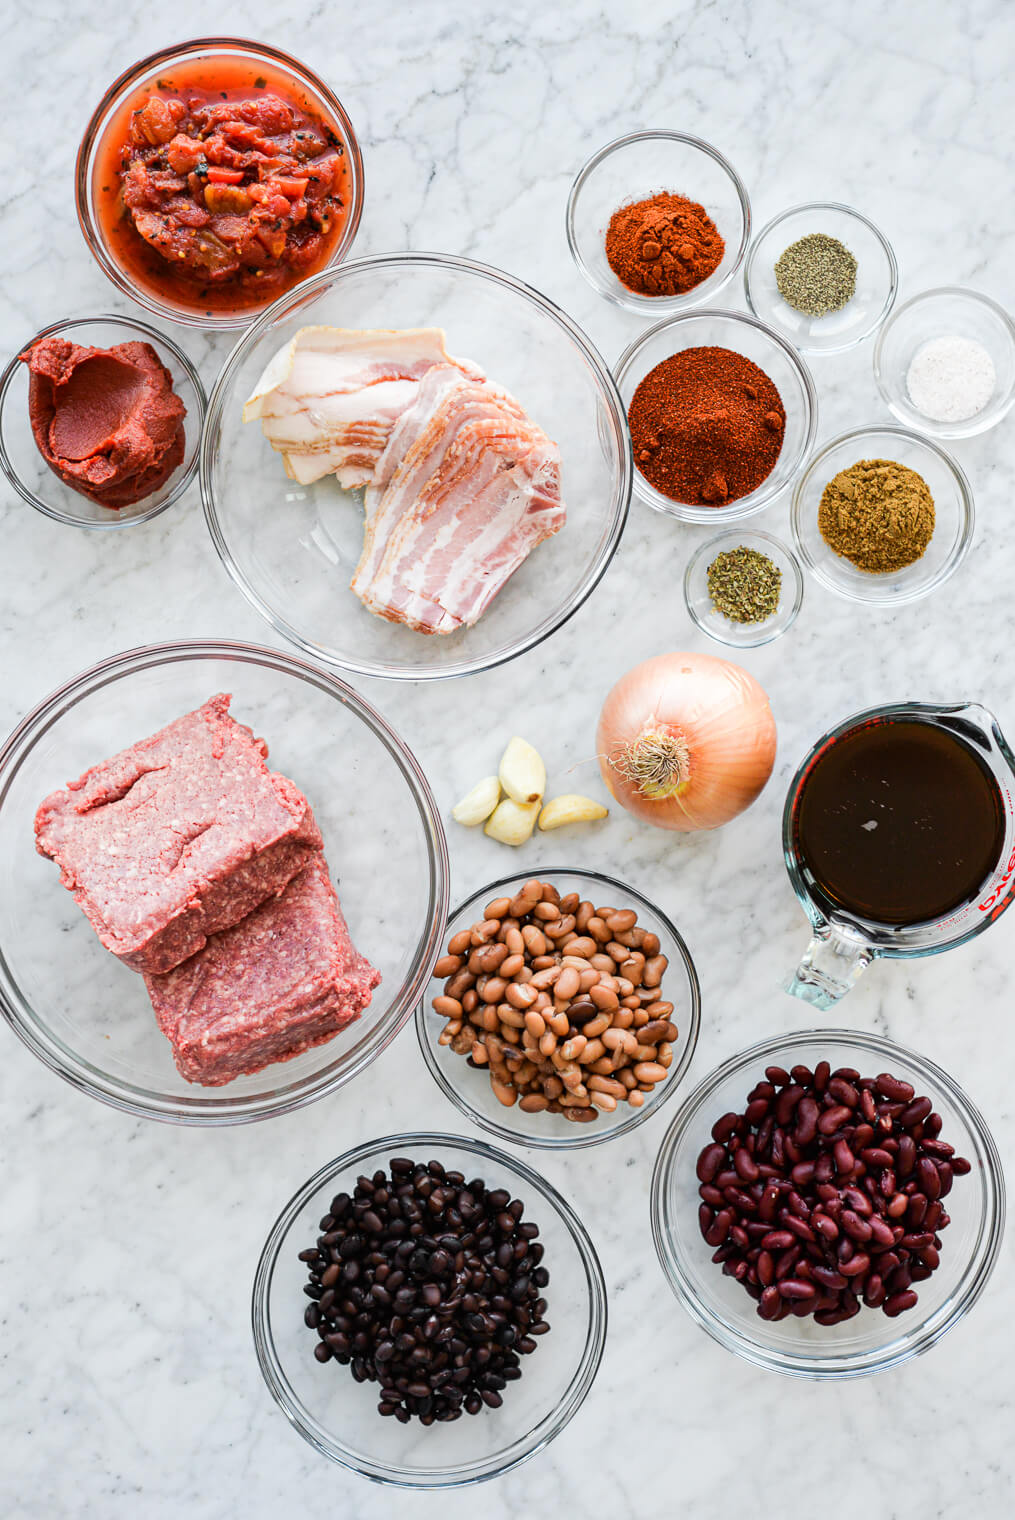 all of the ingredients for homemade beef chili (bacon, beef, tomatoes, tomato paste, beef broth, beans, onion, garlic, and spices) sitting in separate clear glass bowls on a marble surface